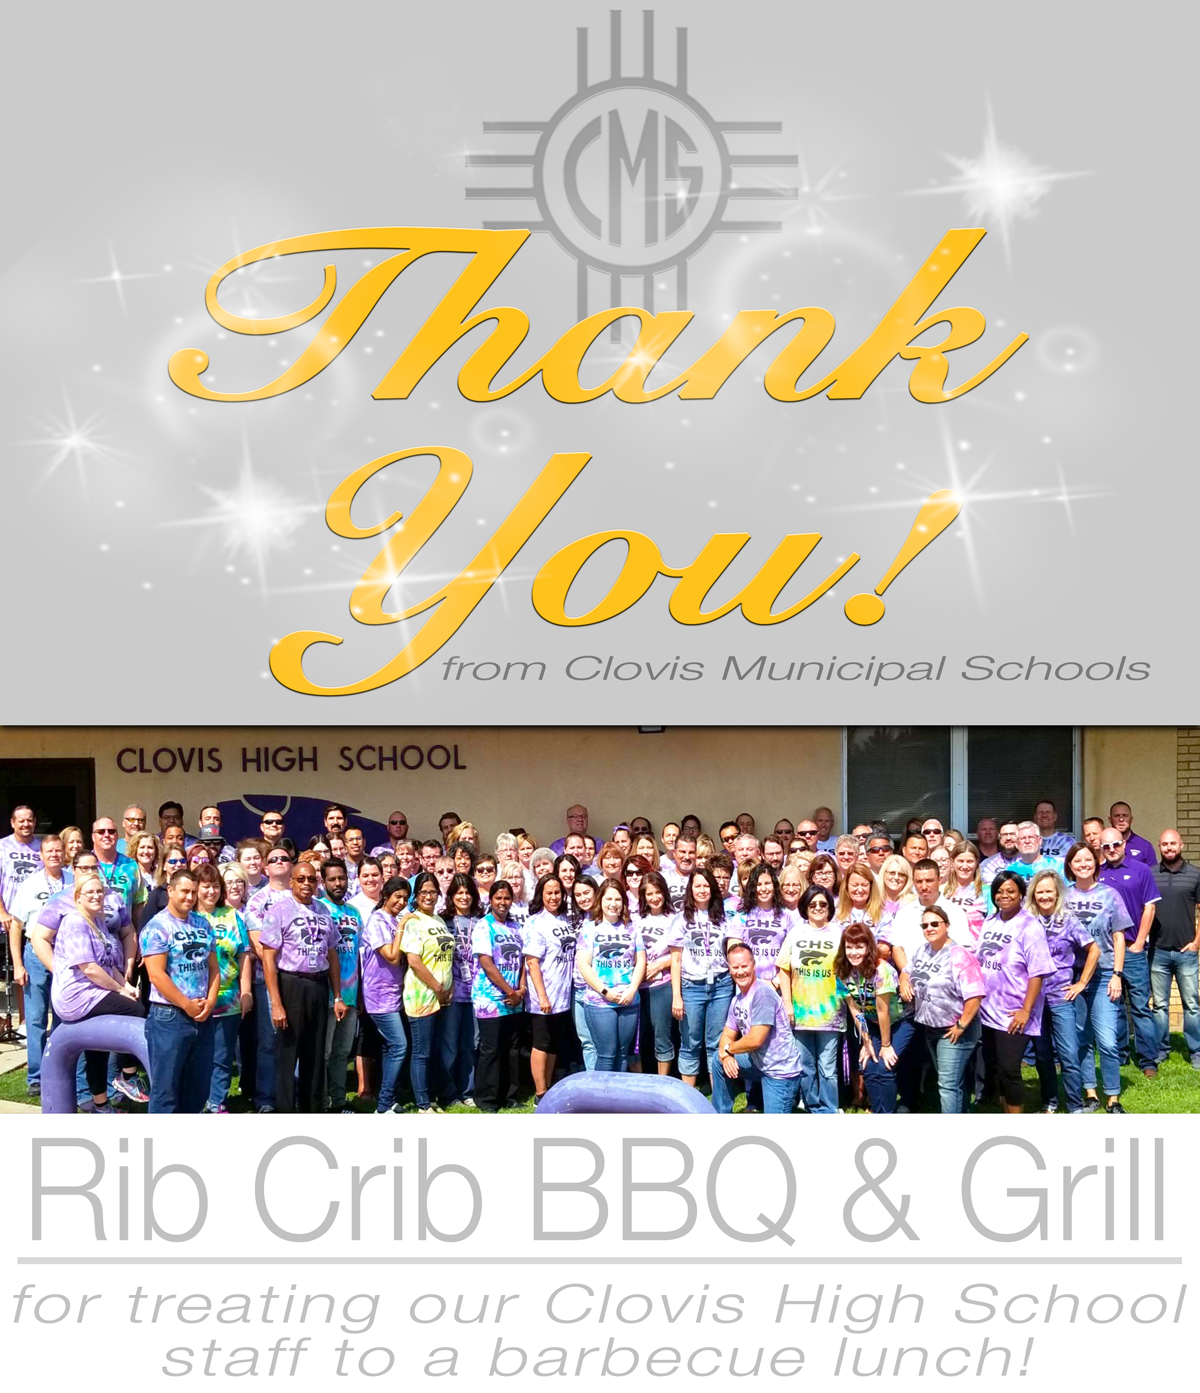 Image of text Thanking Rib Crib